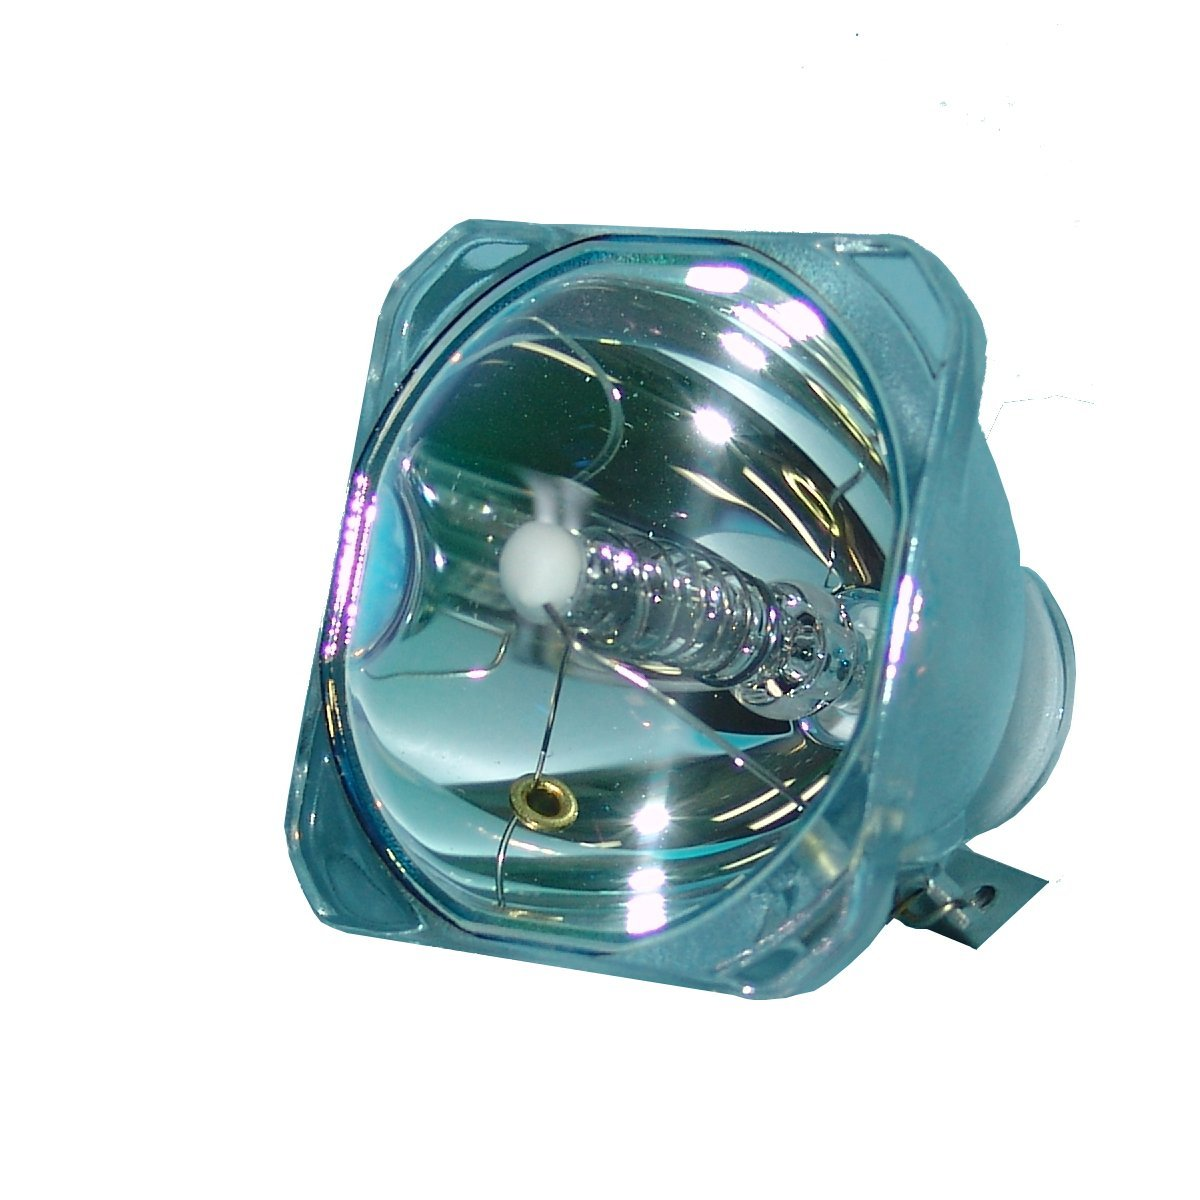 Compatible Bare Bulb TLPLW3 TLP-LW3 for TOSHIBA TDP-T80 TDP-T91 TDP-T98 TDP-TW90 TDP-T90 TDP-SW80U Projector Lamp Without Case compatible bare bulb tlpl78 tlp l78 for toshiba tlp 781e tlp 781j tlp 781u projector lamp bulb without housing free shipping